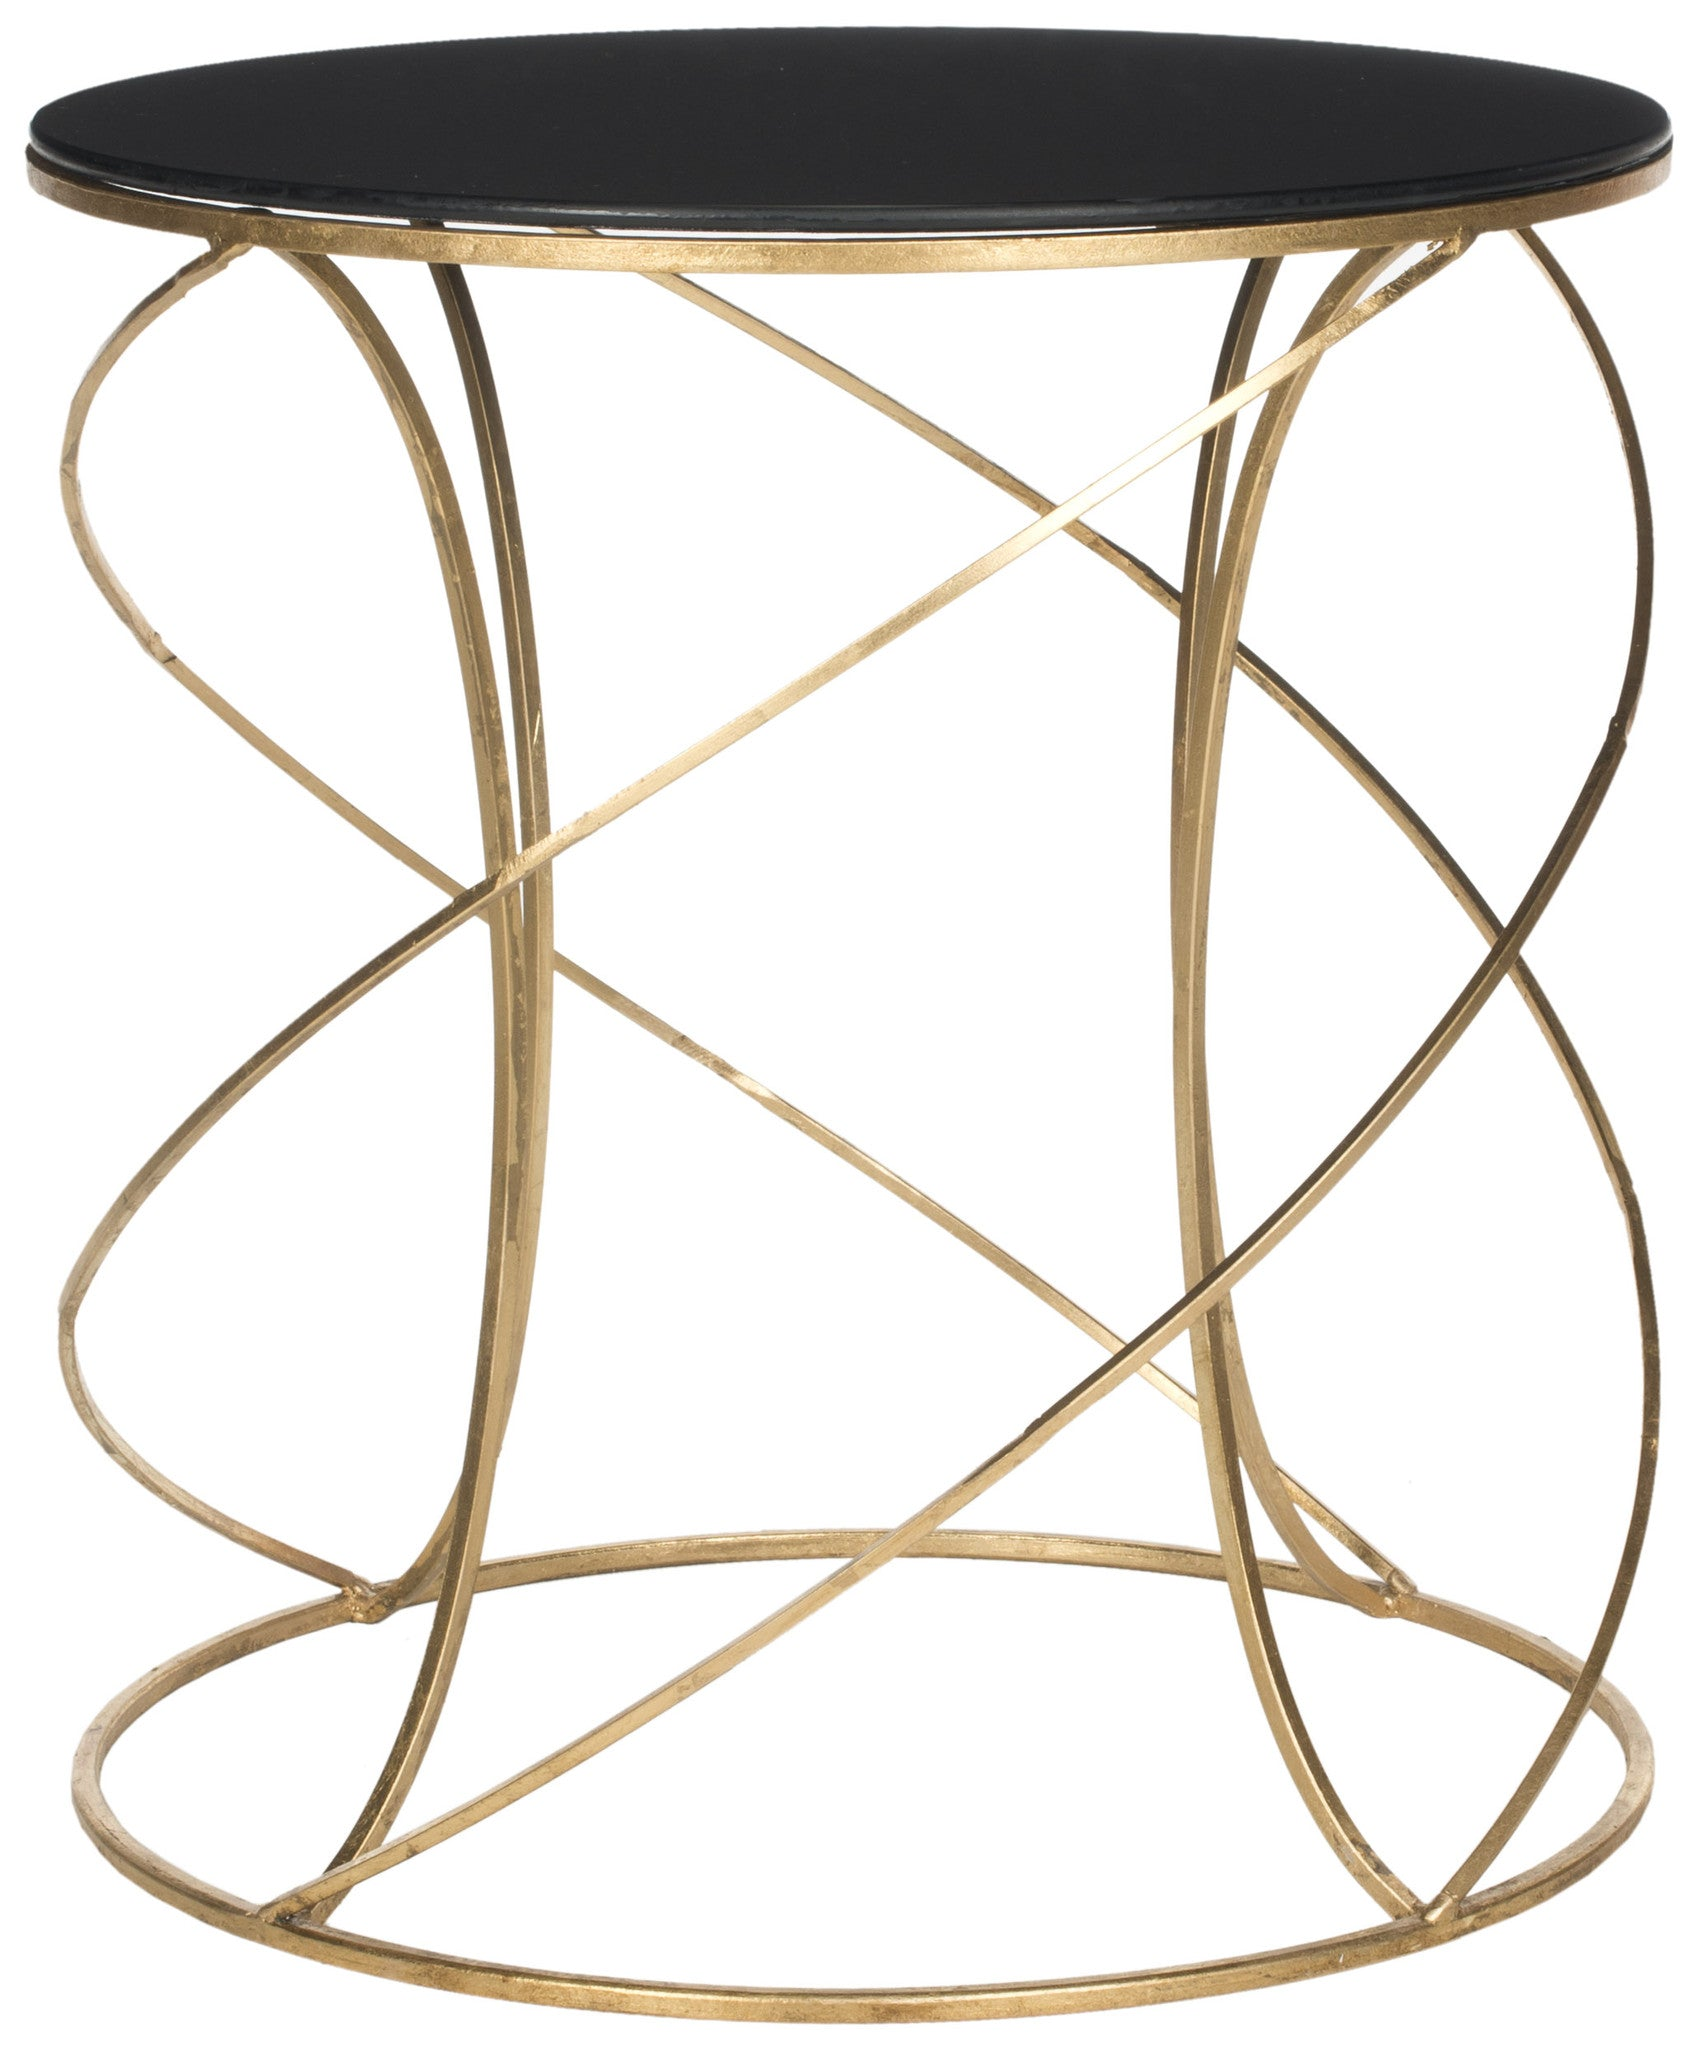 Cagney Accent Table w/ Black Glass Top design by Safavieh